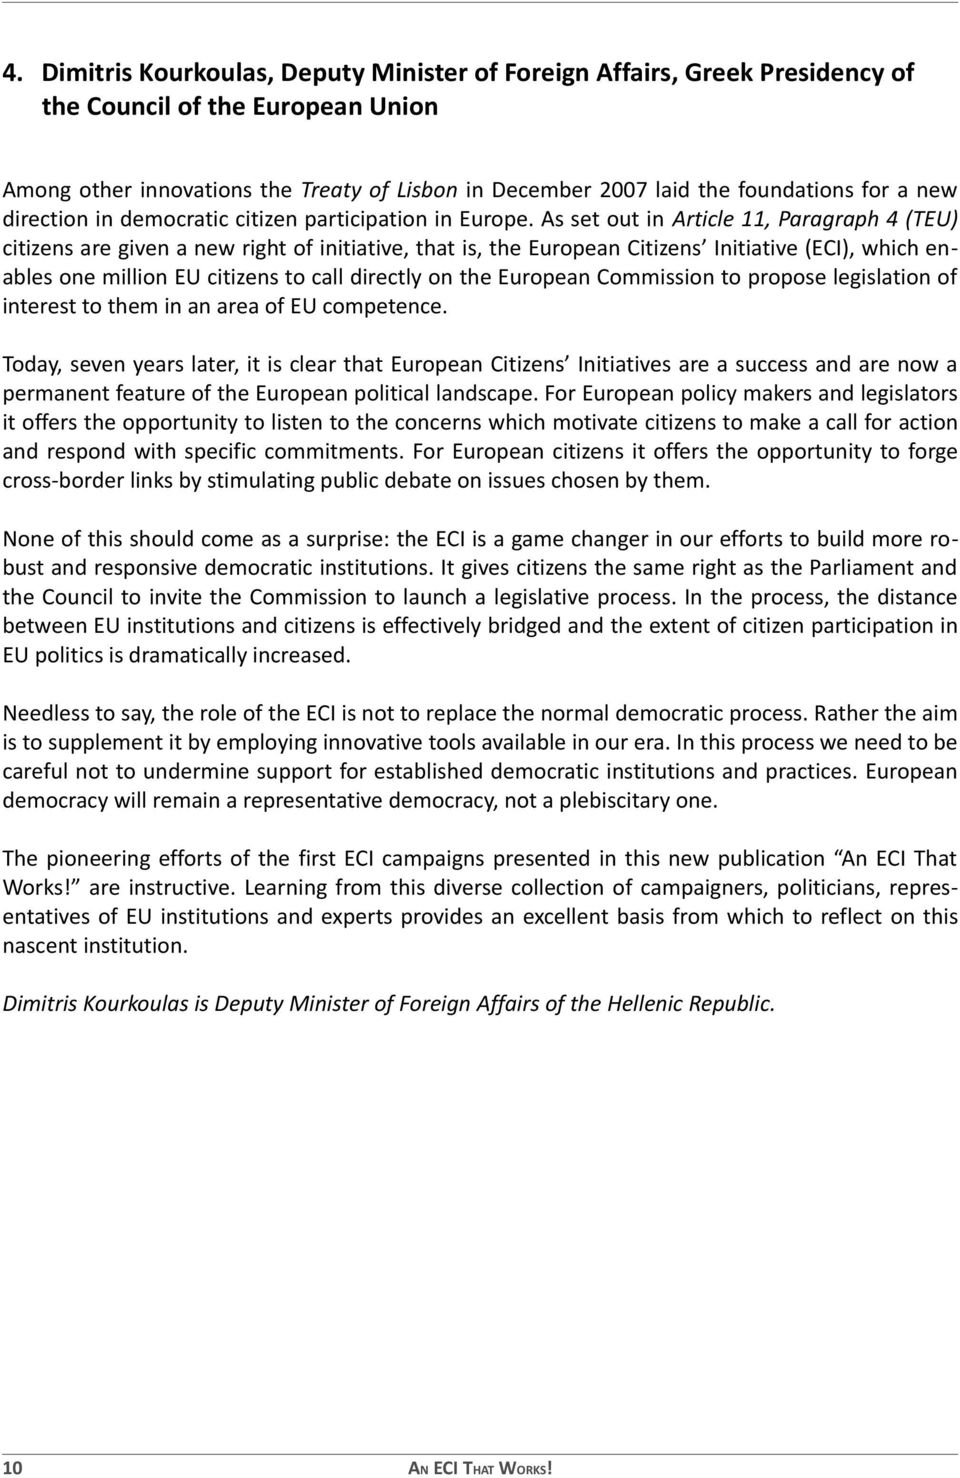 As set out in Article 11, Paragraph 4 (TEU) citizens are given a new right of initiative, that is, the European Citizens Initiative (ECI), which enables one million EU citizens to call directly on